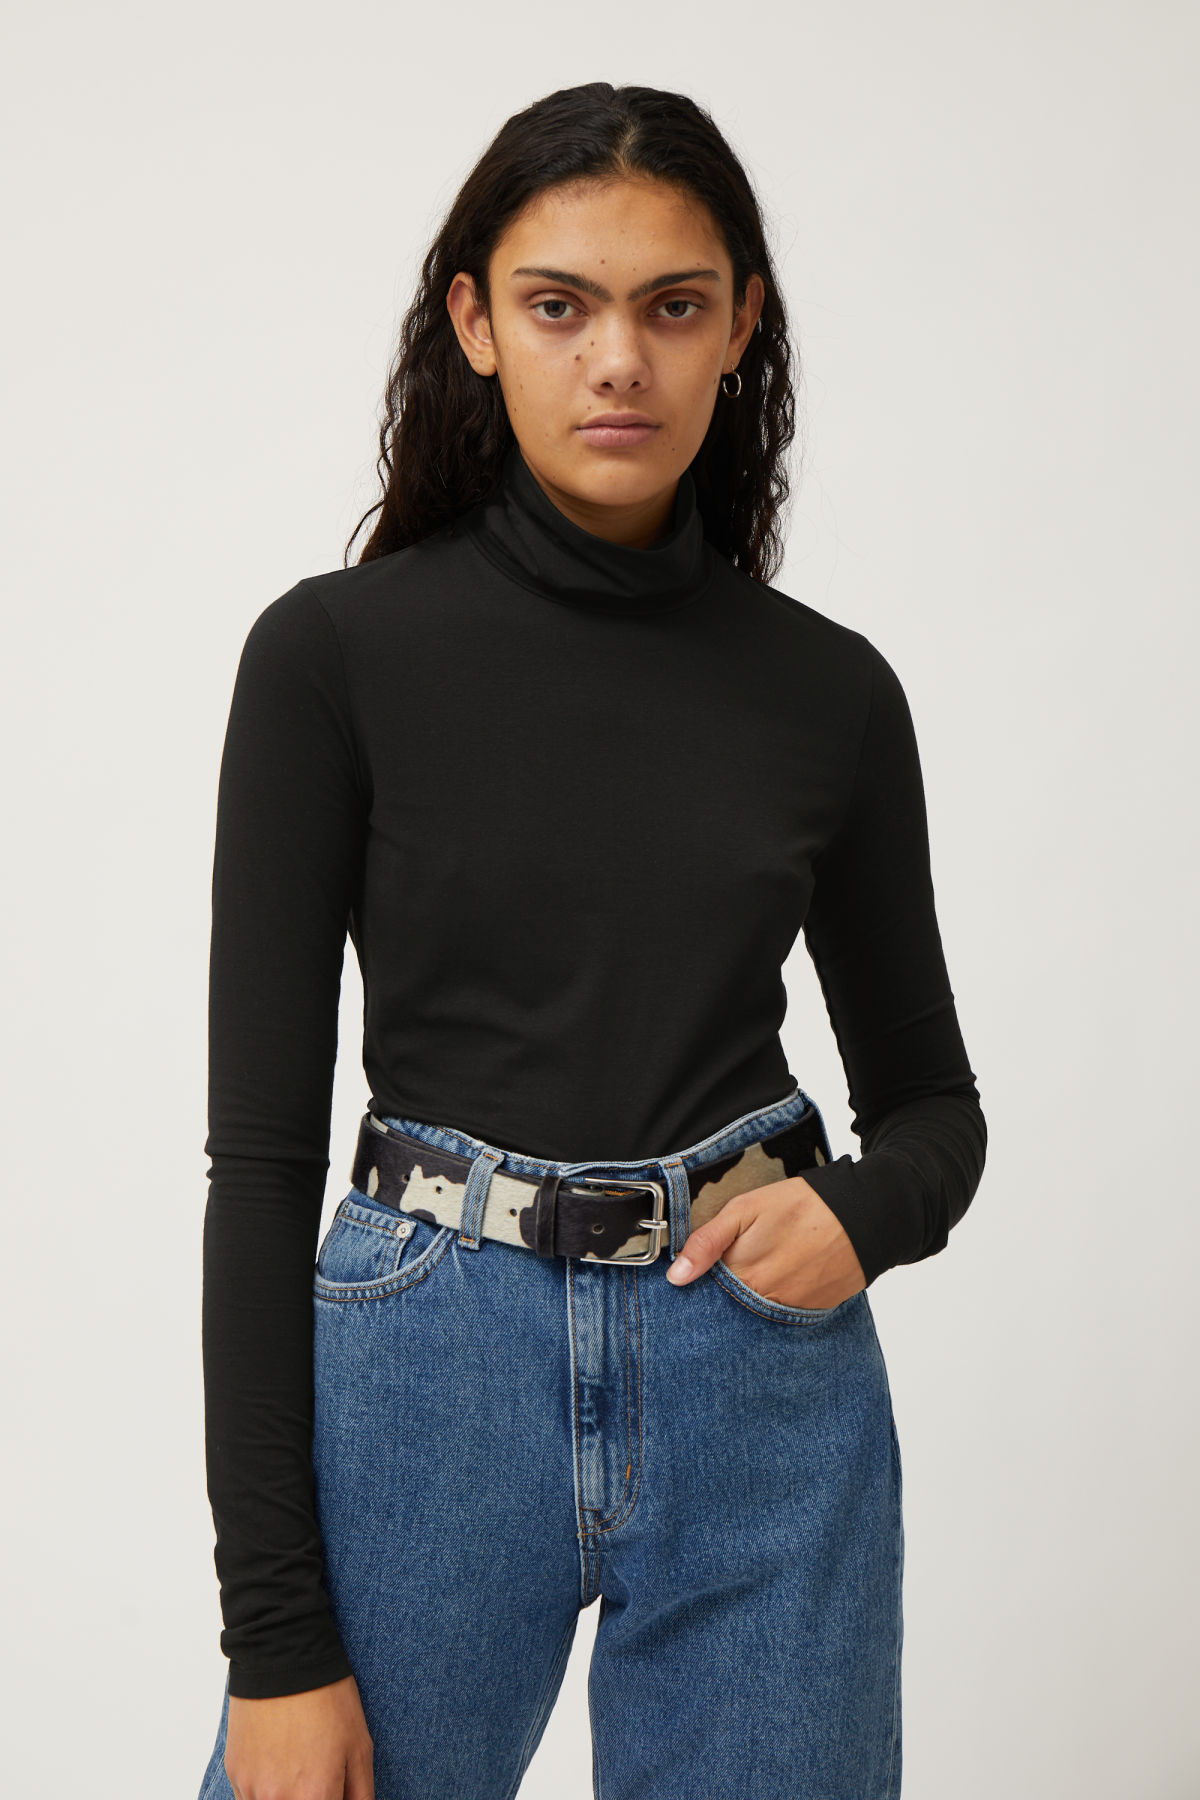 Lookbook Front Image of Weekday Chie Turtleneck in Black